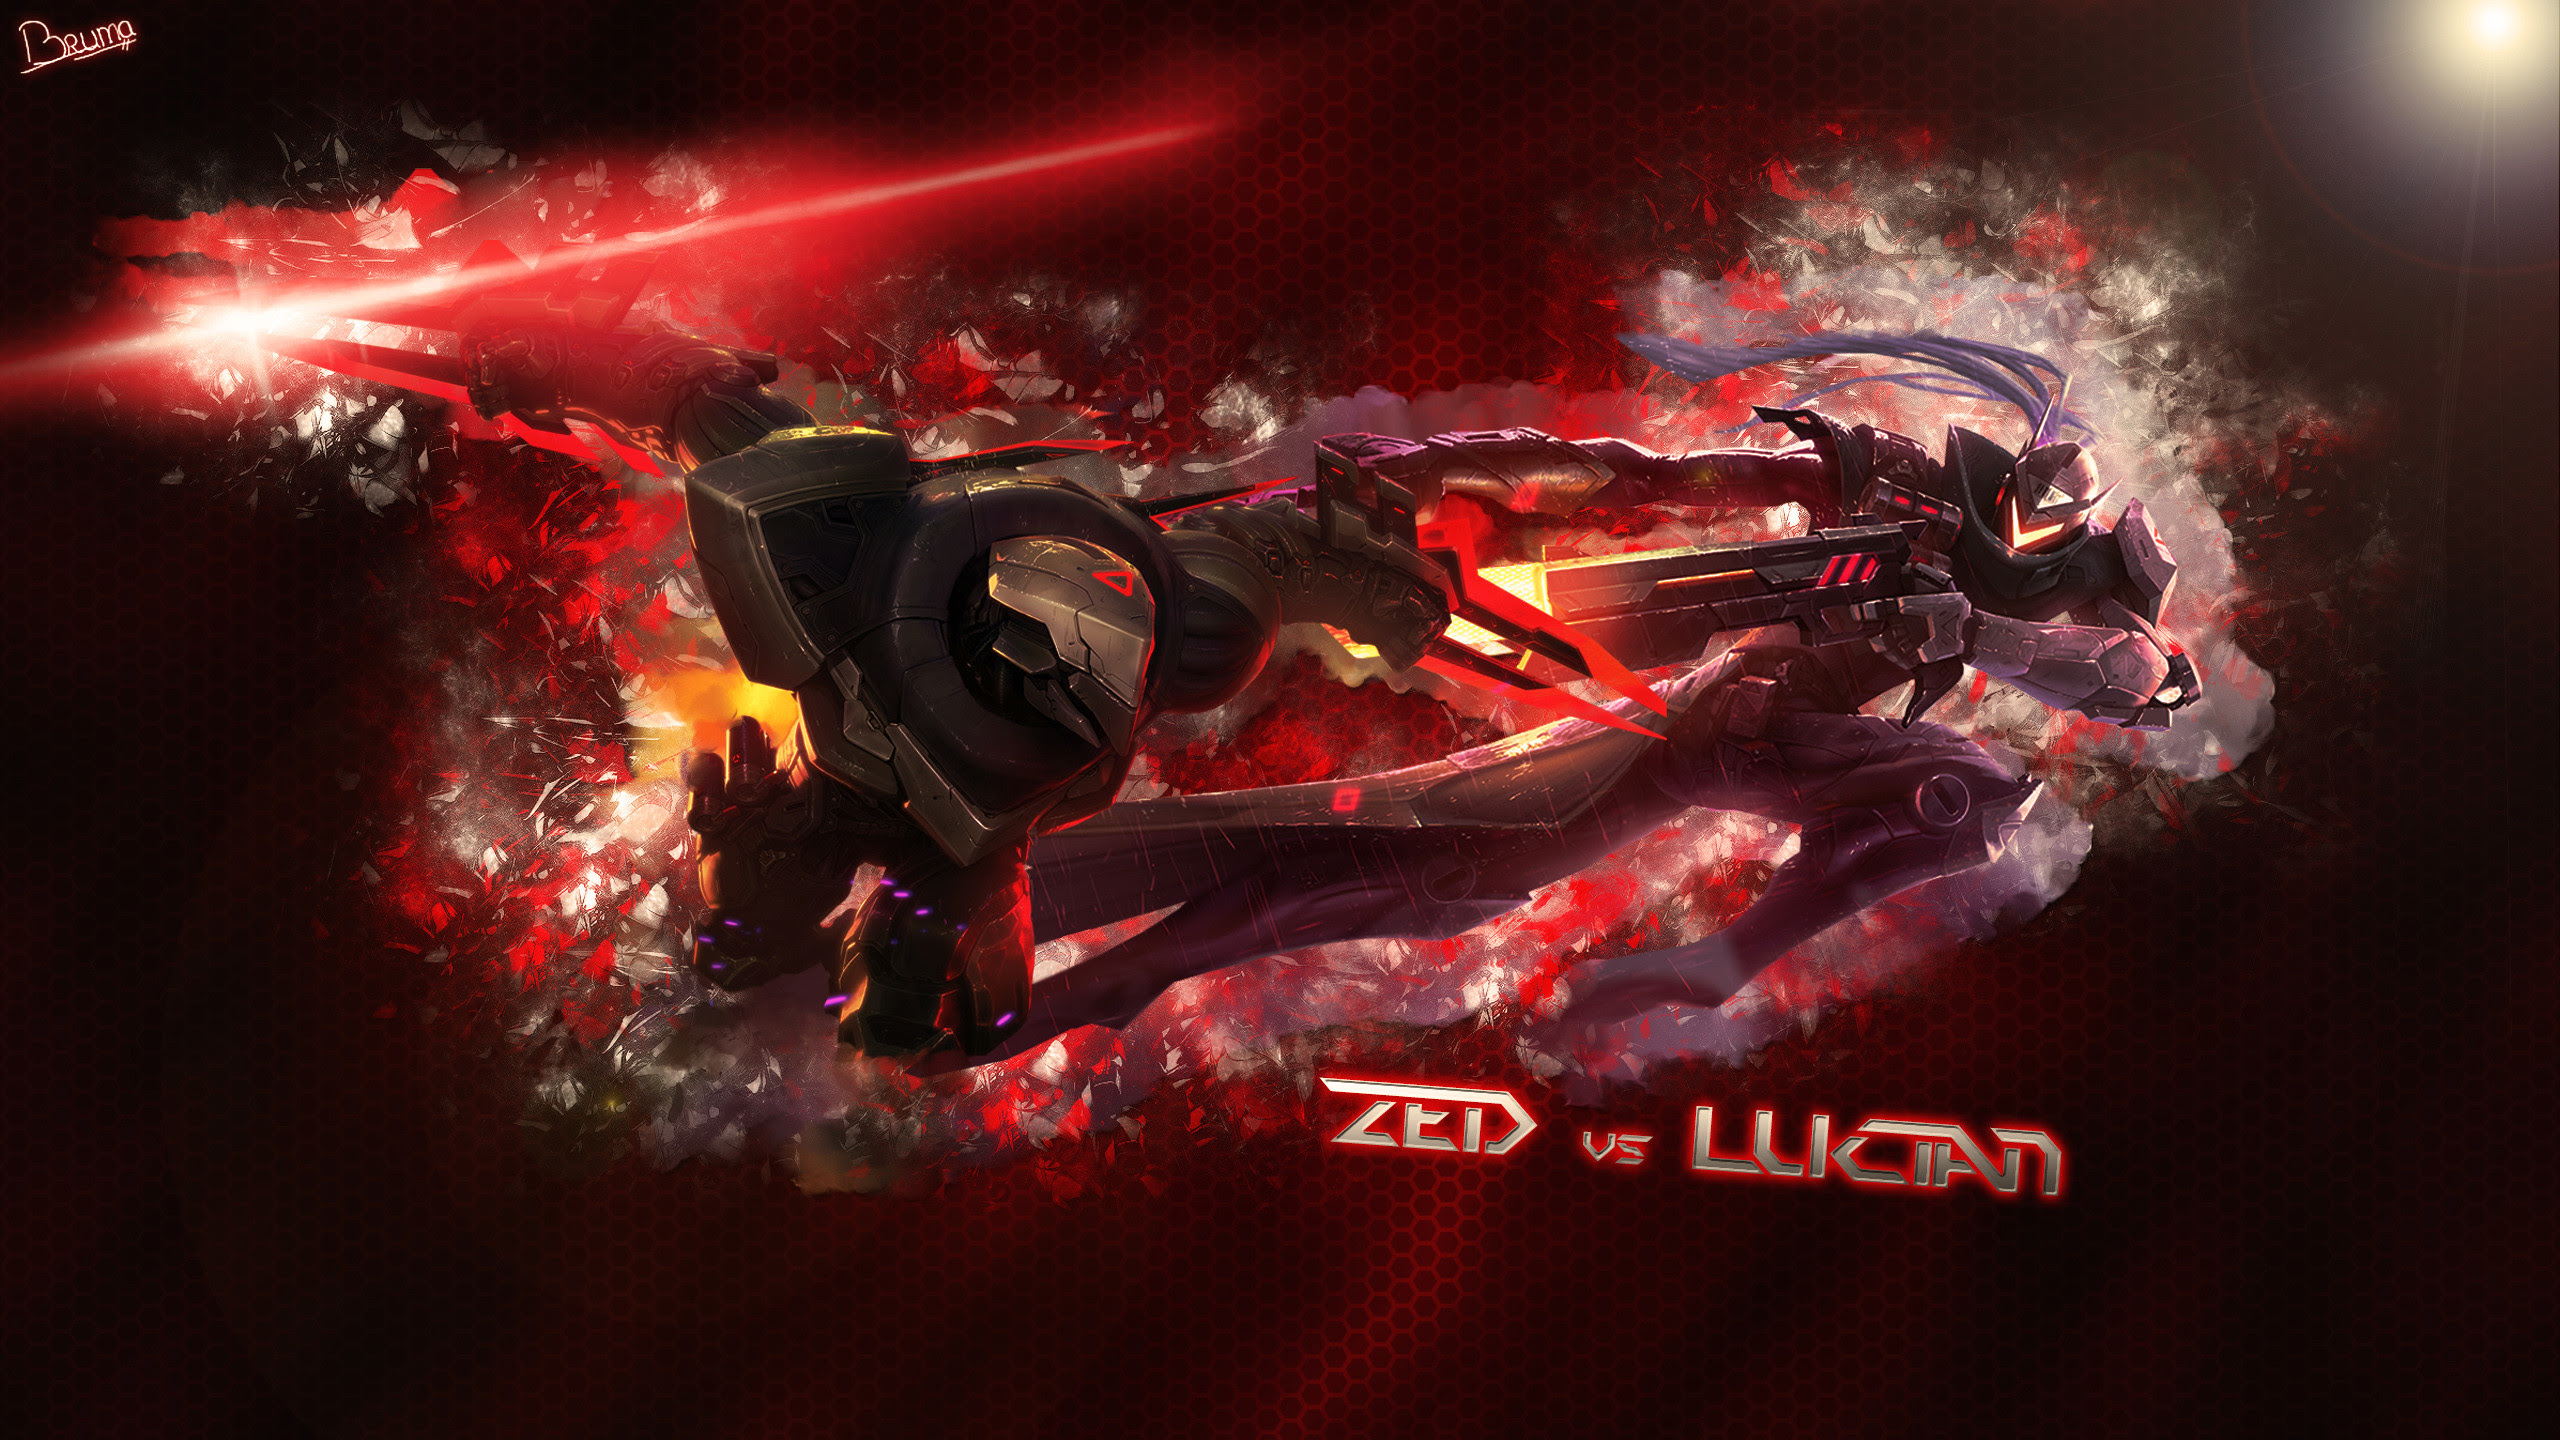 Project Zed Wallpaper 87 Images